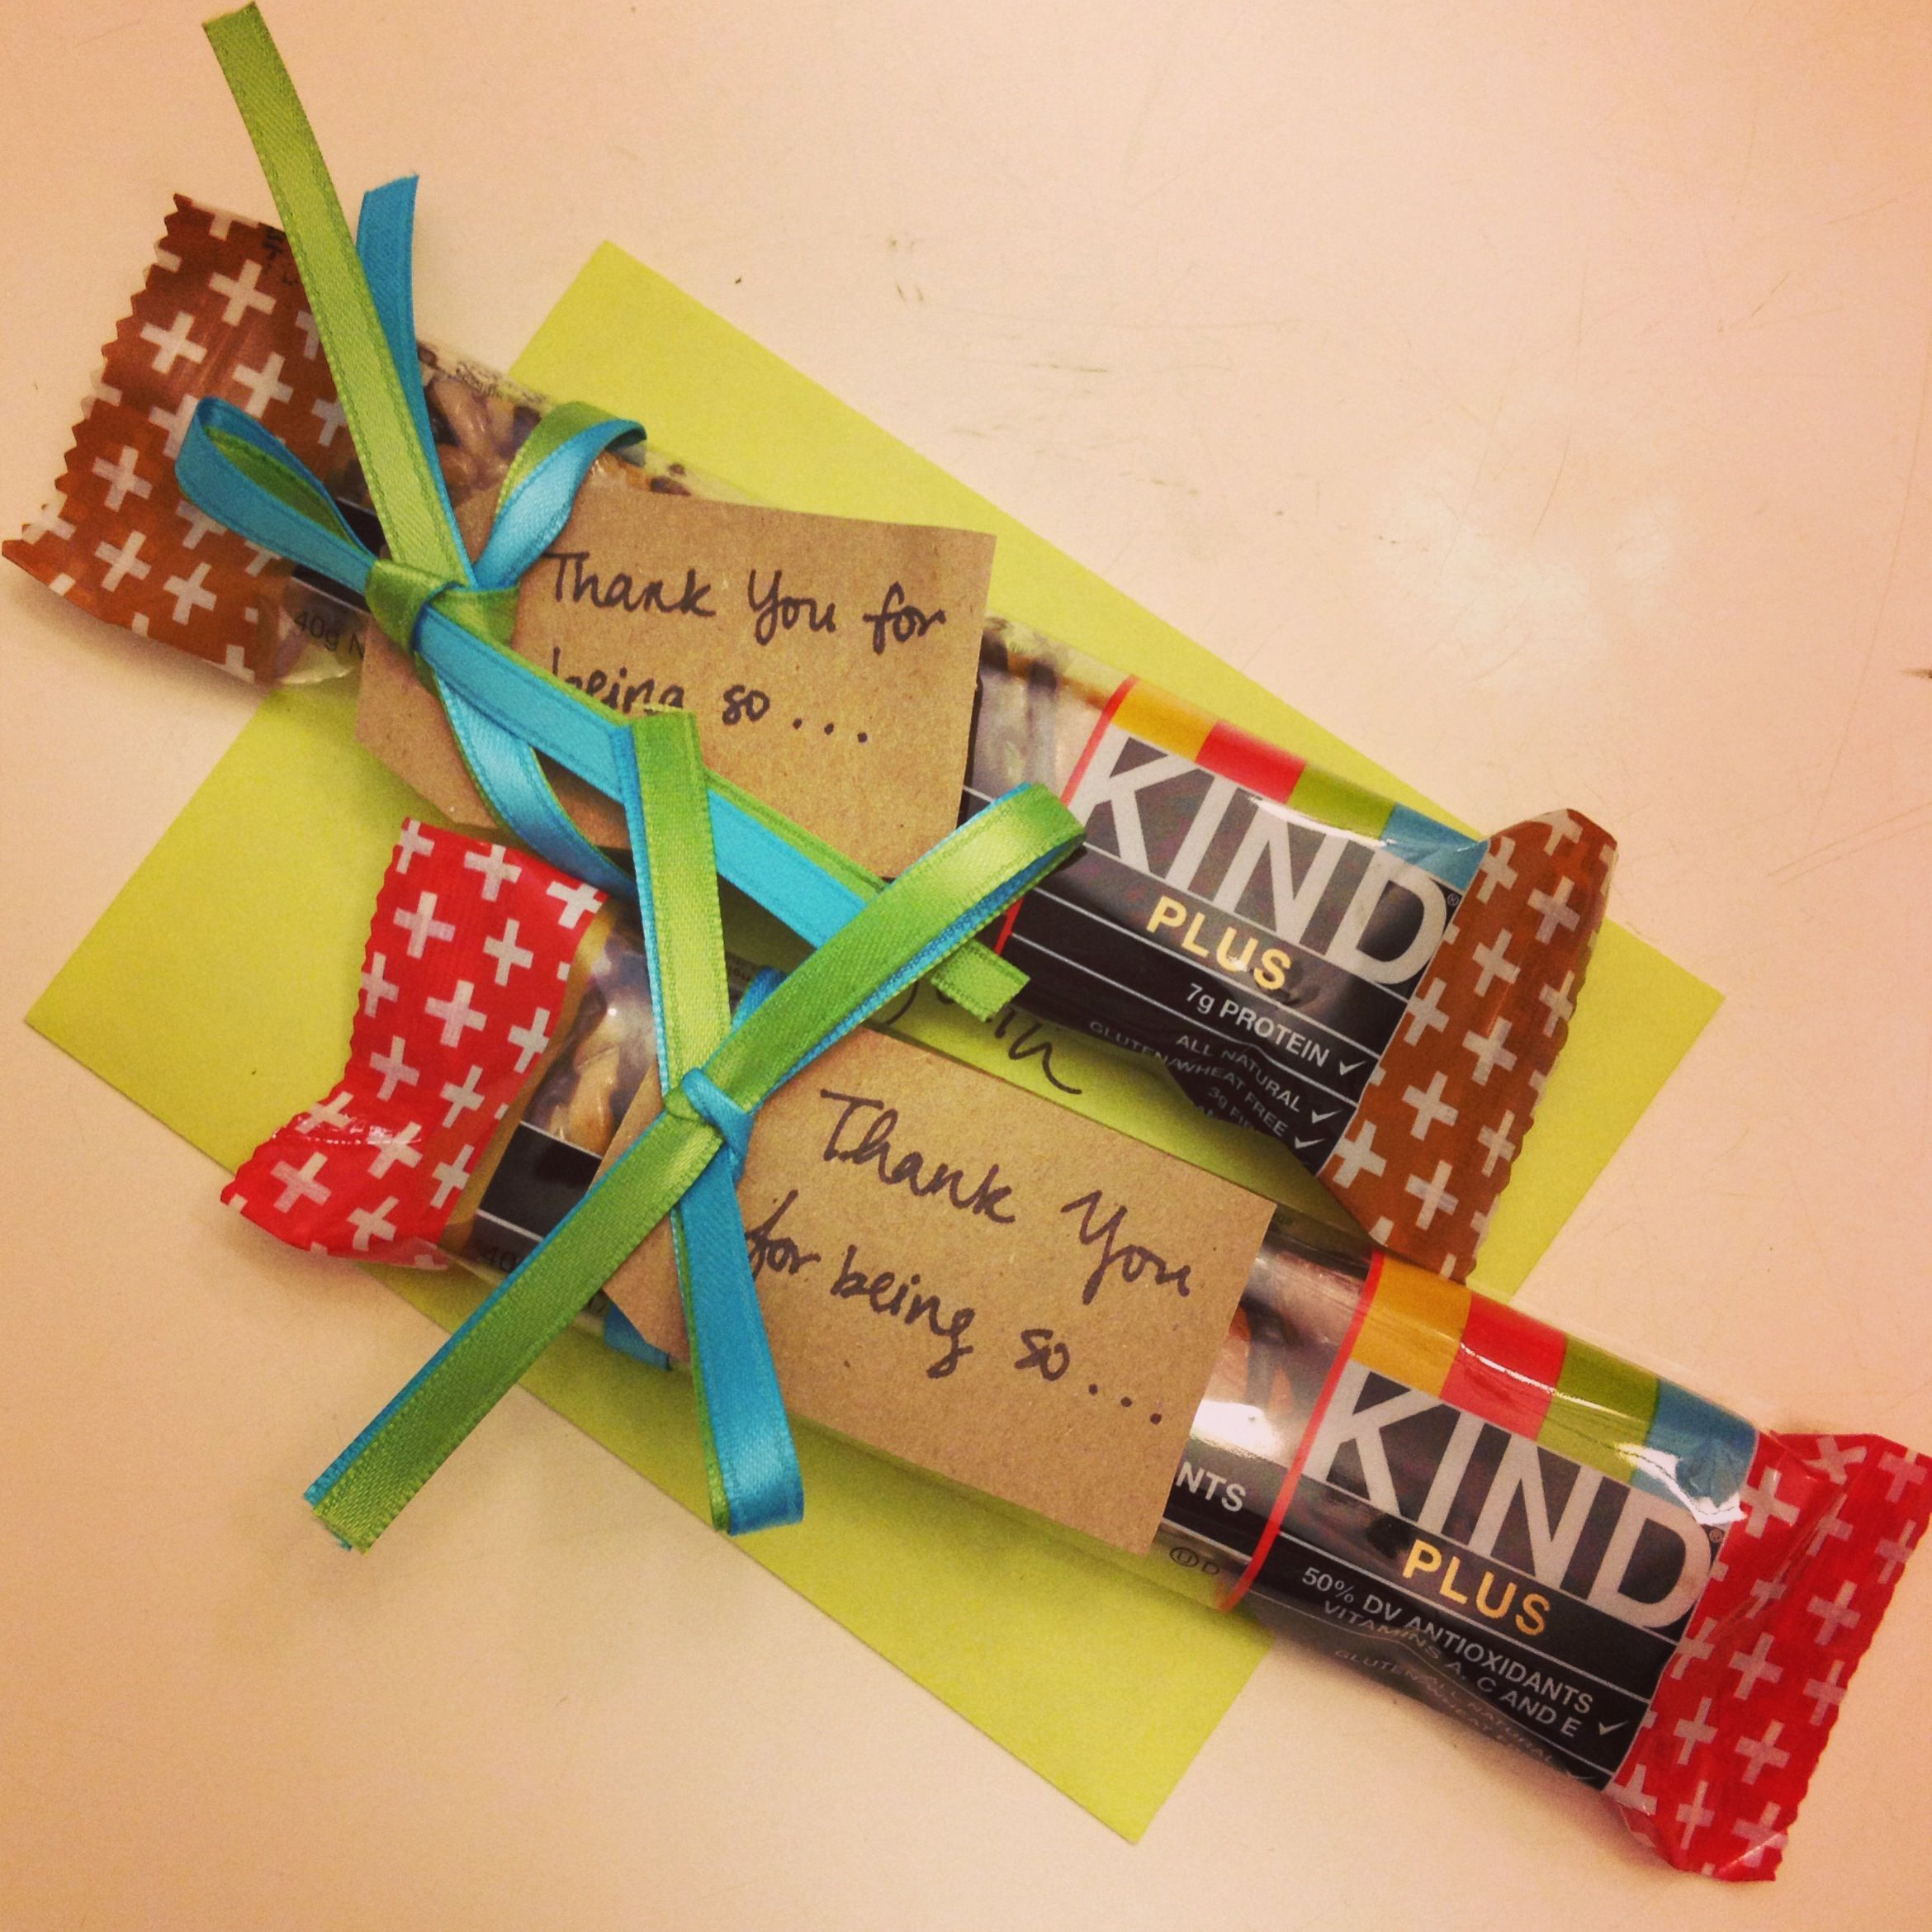 Cute Thank You Gift Idea Using Kind Bars In 2020 Employee Appreciation Gifts Volunteer Appreciation Gifts Staff Gifts